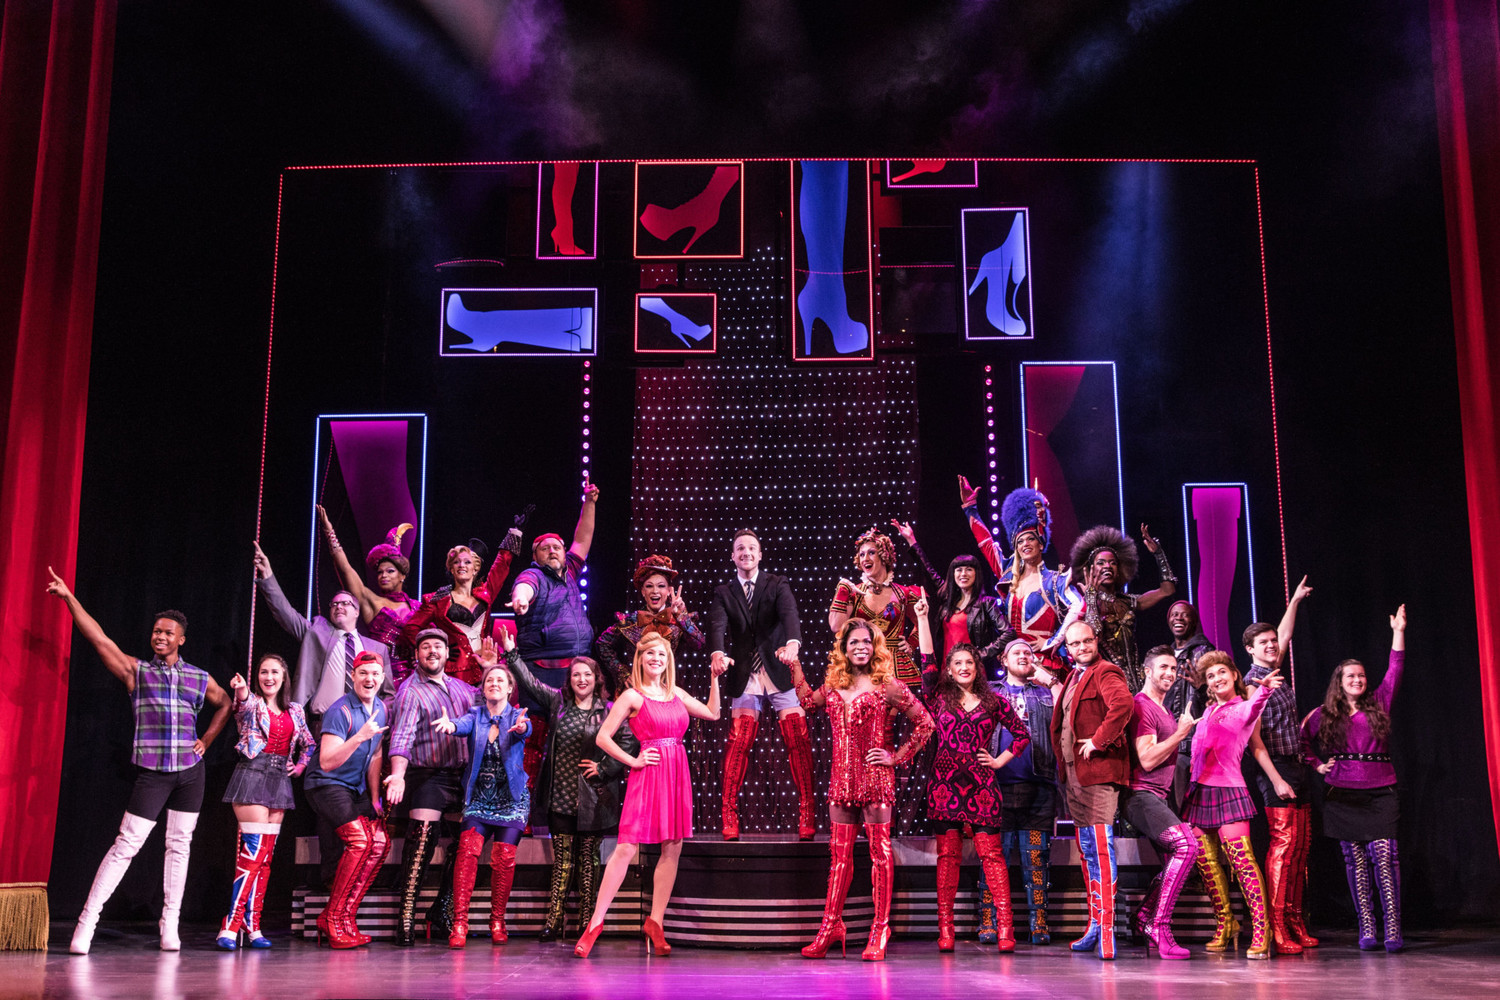 BWW Review: KINKY BOOTS at Times Union Performing Arts Center